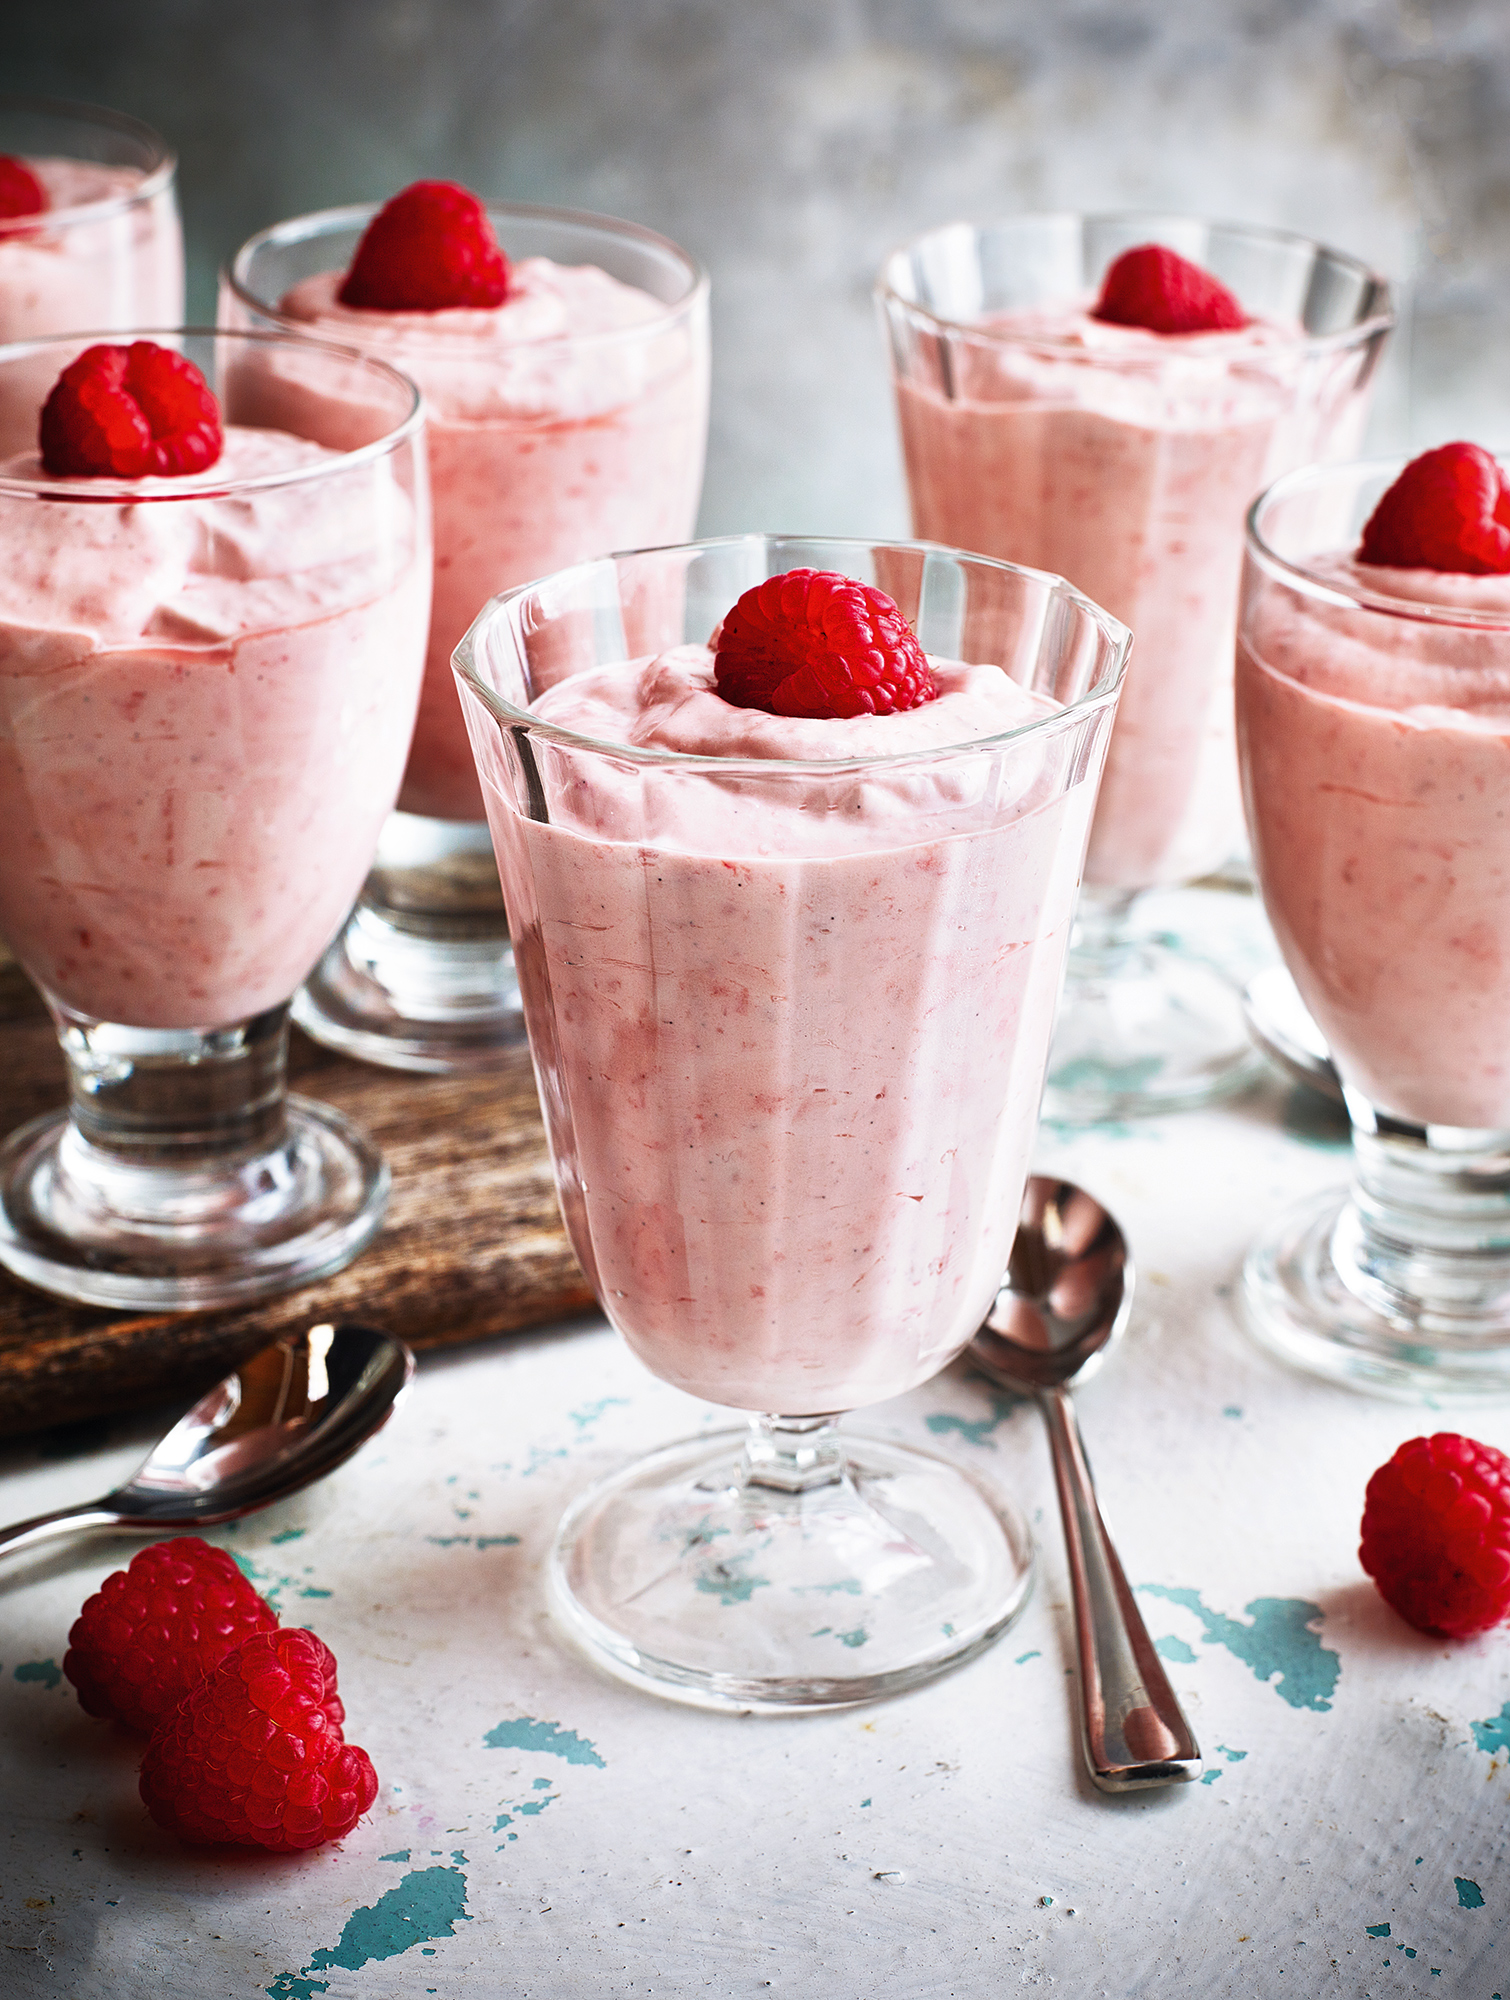 Raspberry and cardamom fool